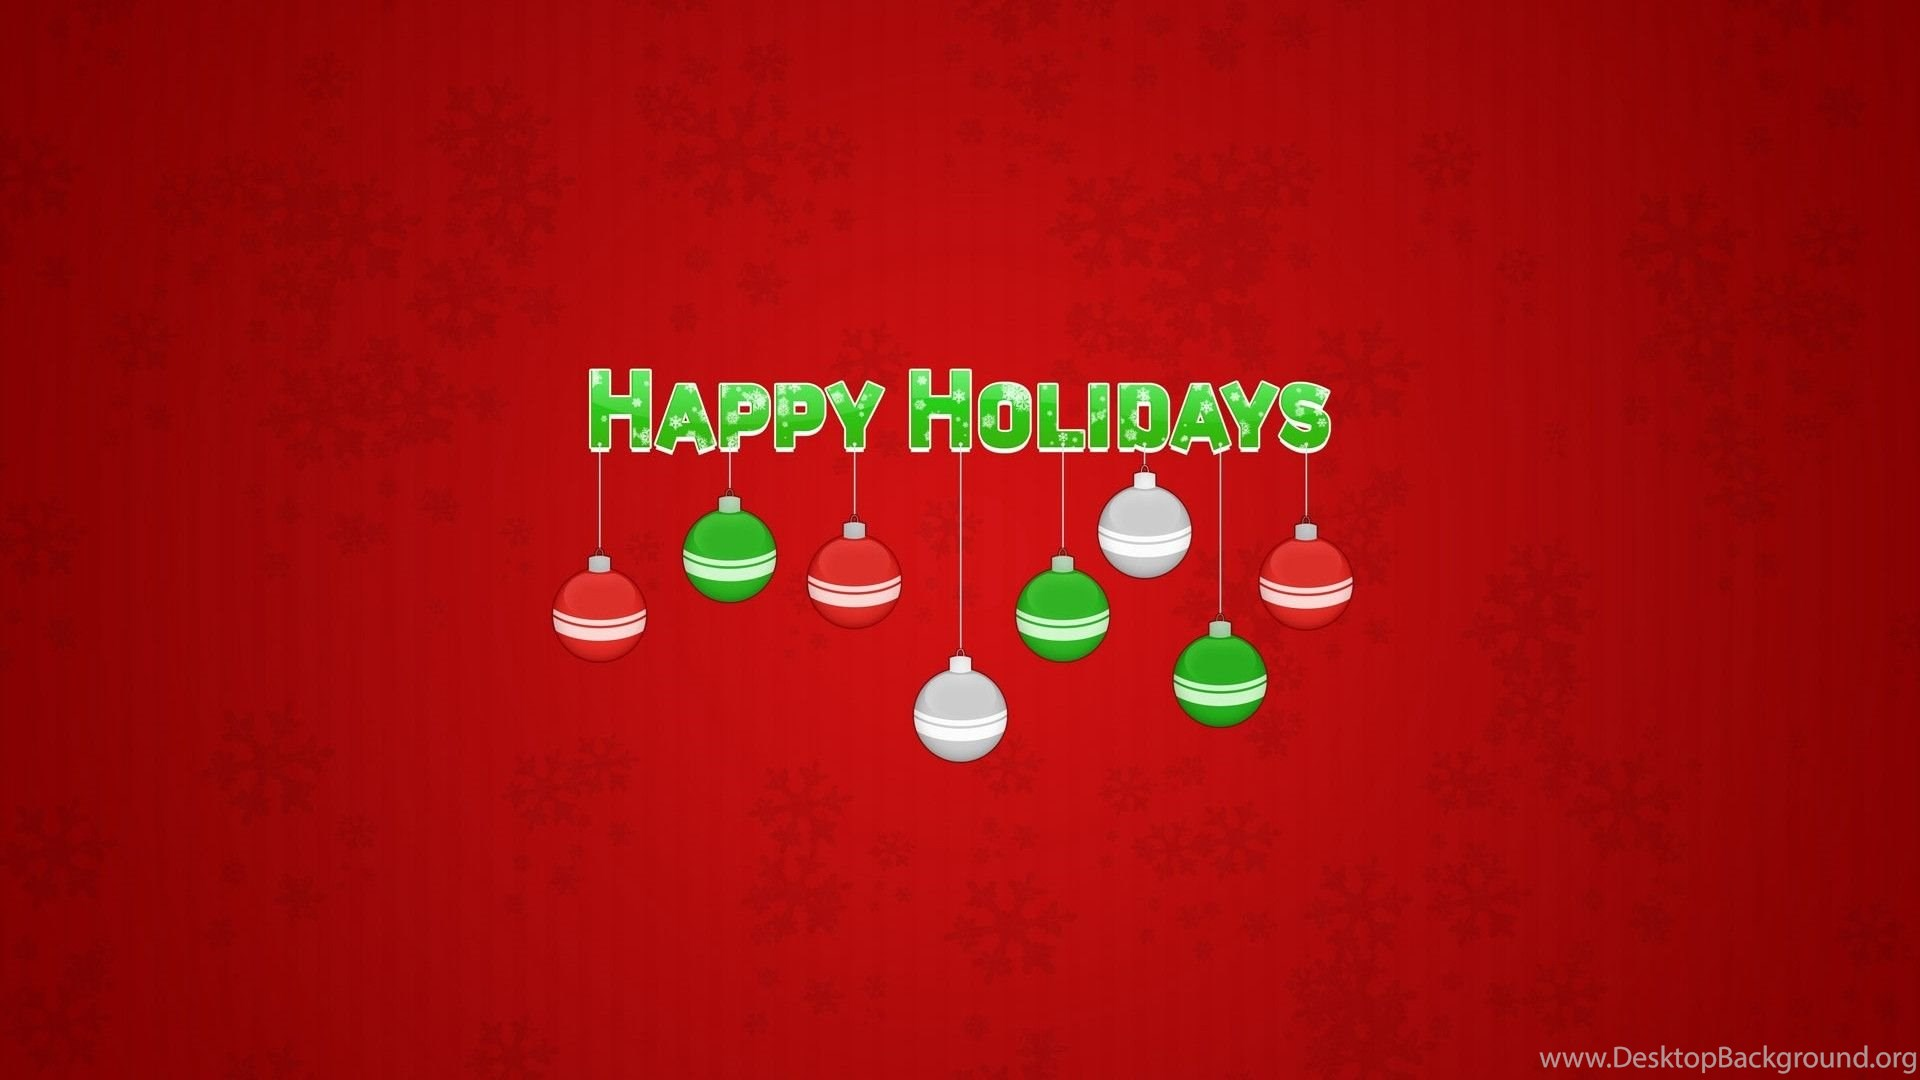 Happy Holidays Wallpapers Wallpapers Cave Desktop Background